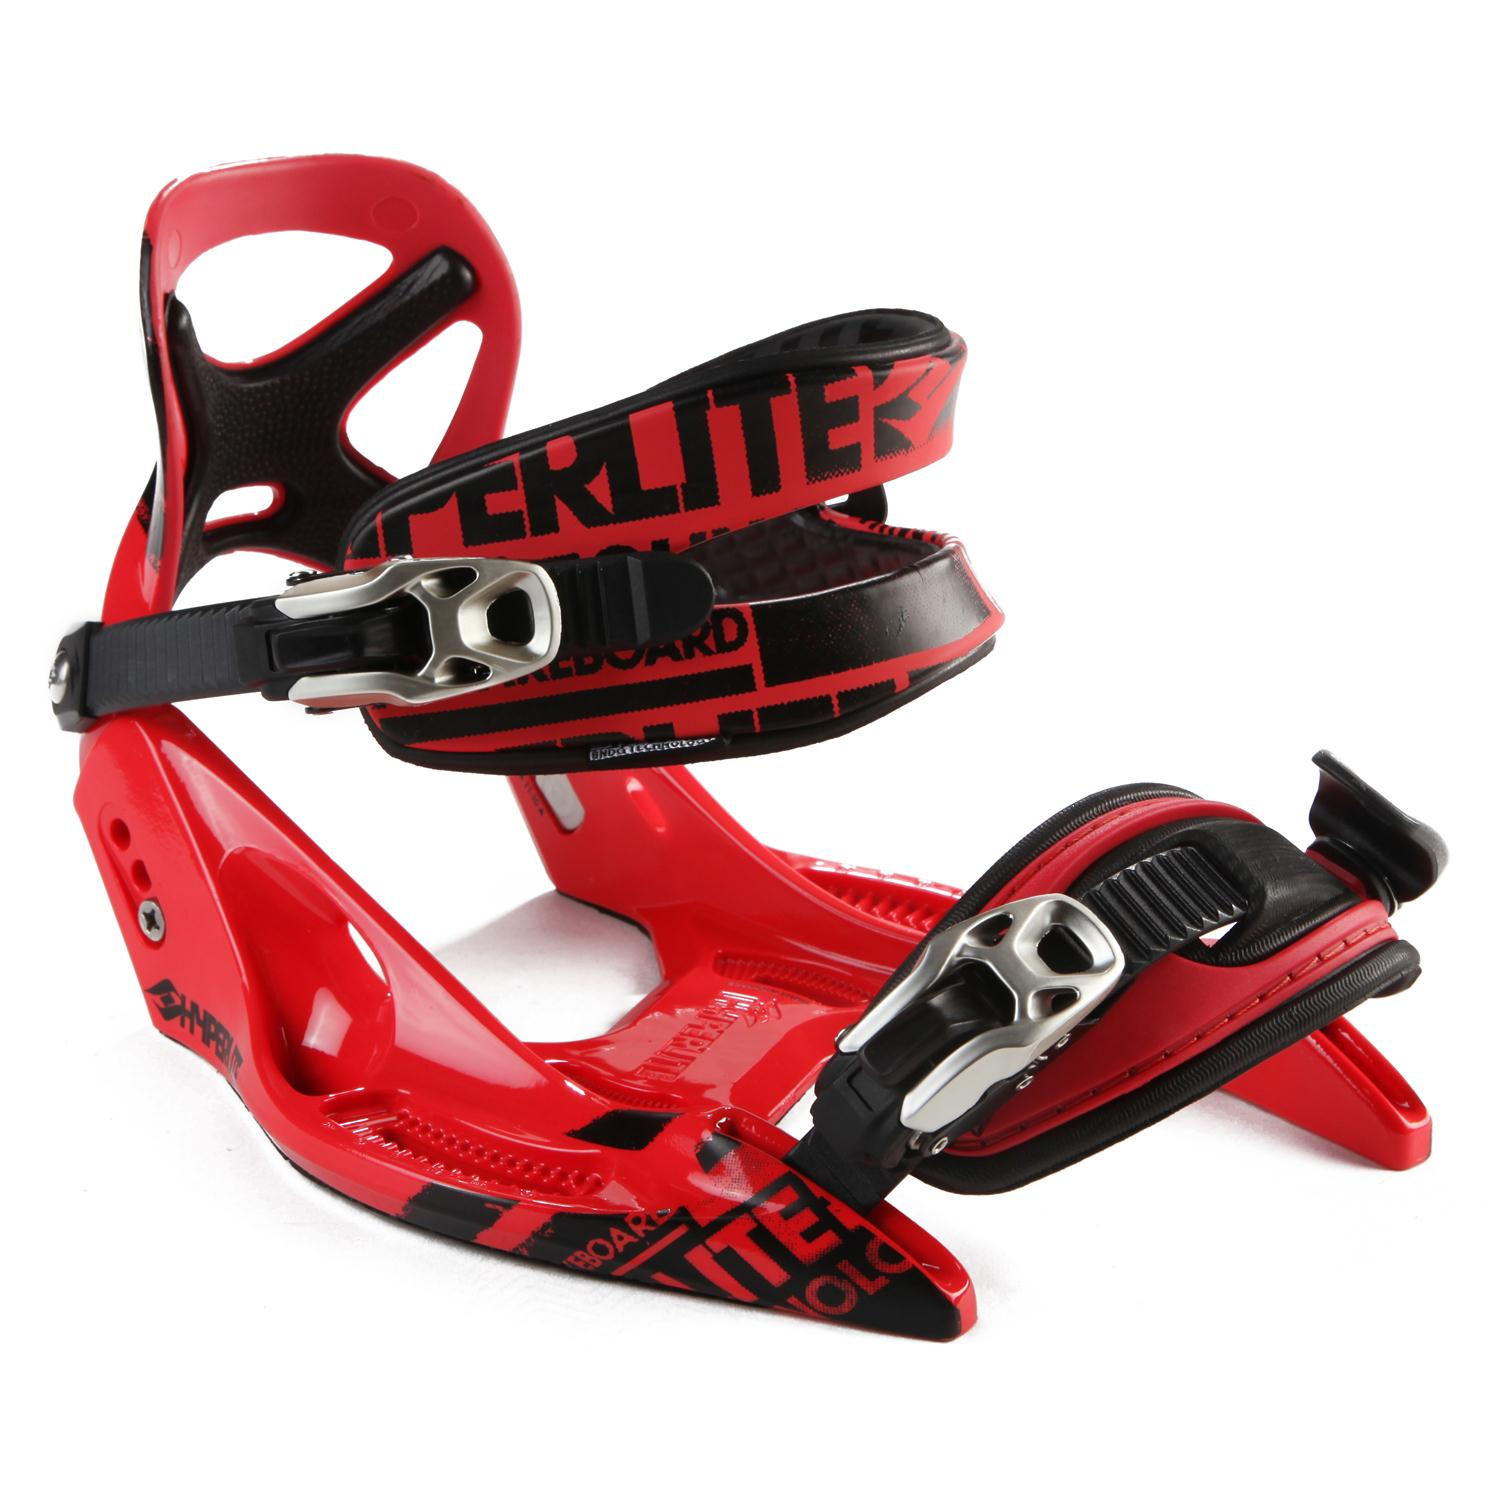 LTD. EDITION SYSTEM PRO'S RED - EU 39-42/US 7-9 HYPERLITE 2013